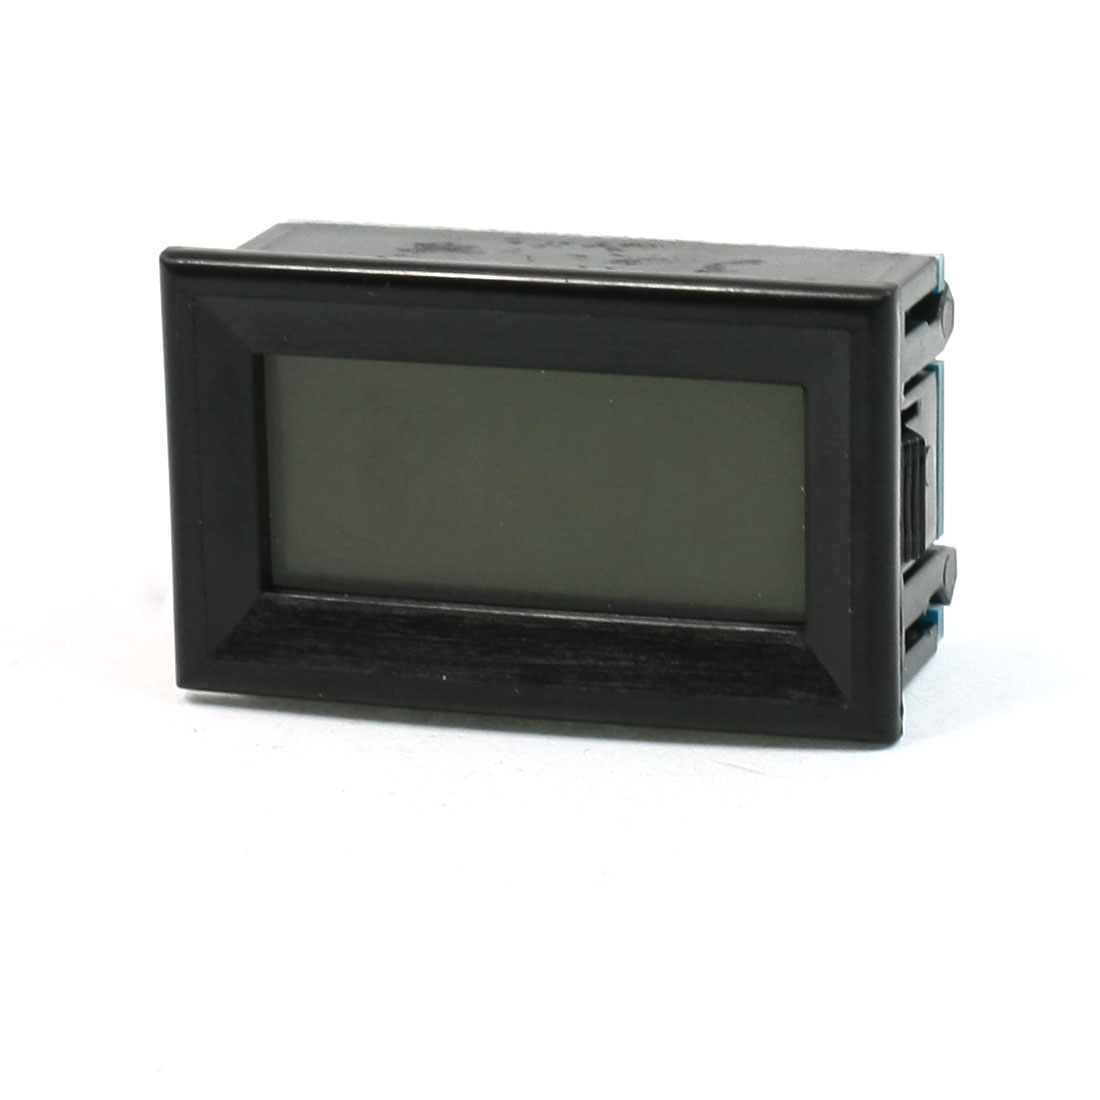 DC 0-20V Measuring Range Digital Display Voltmeter Panel Black